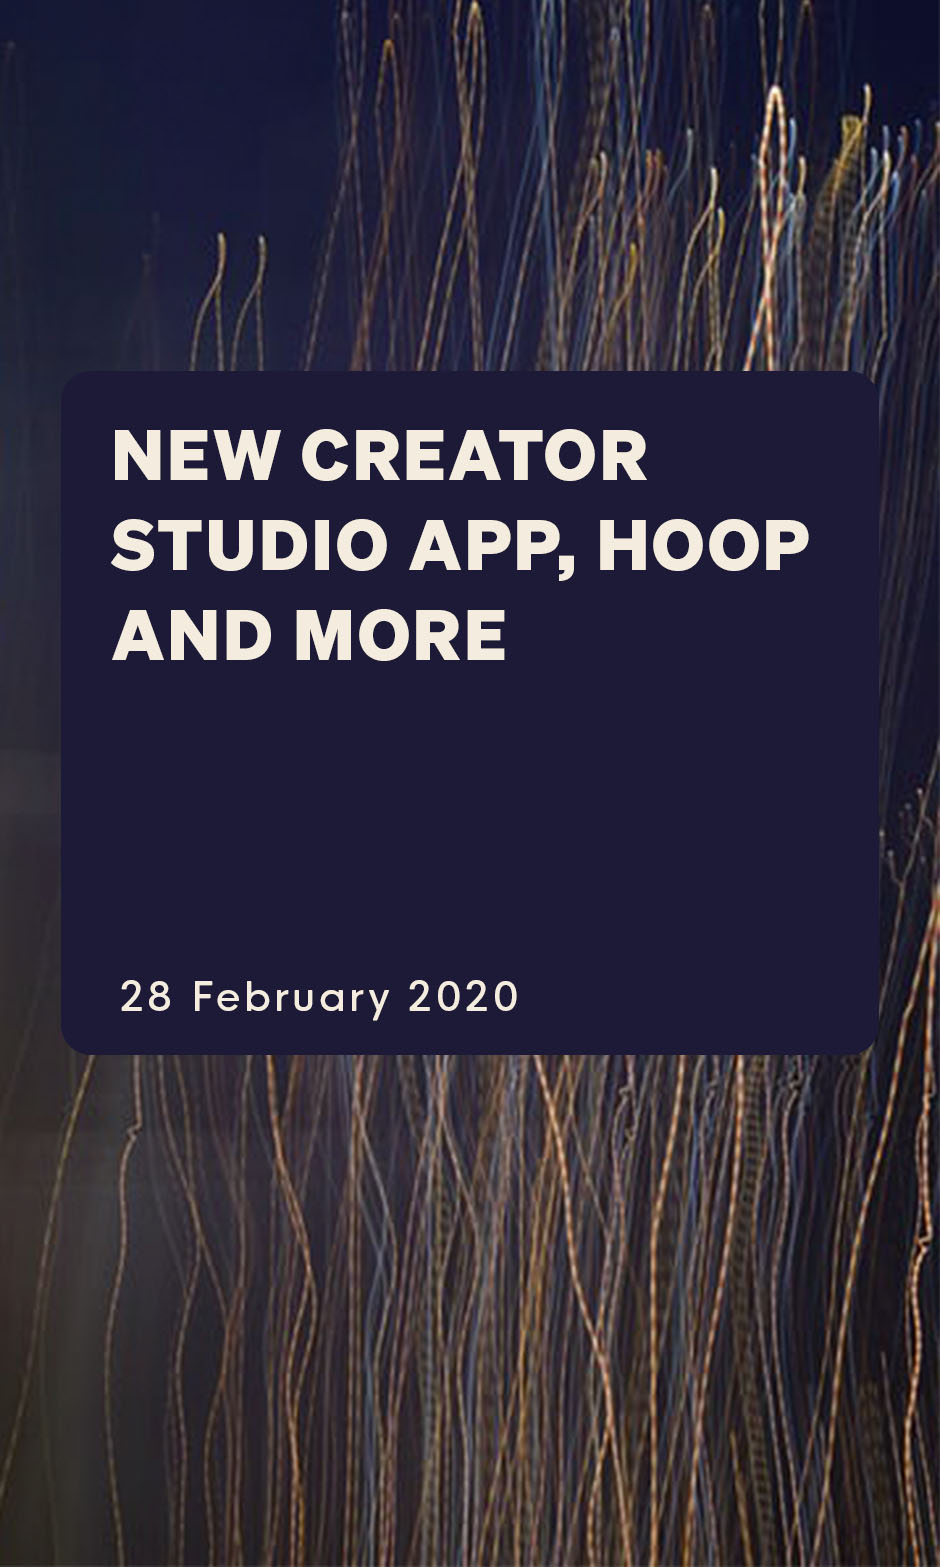 New Creator Studio app, Hoop and more